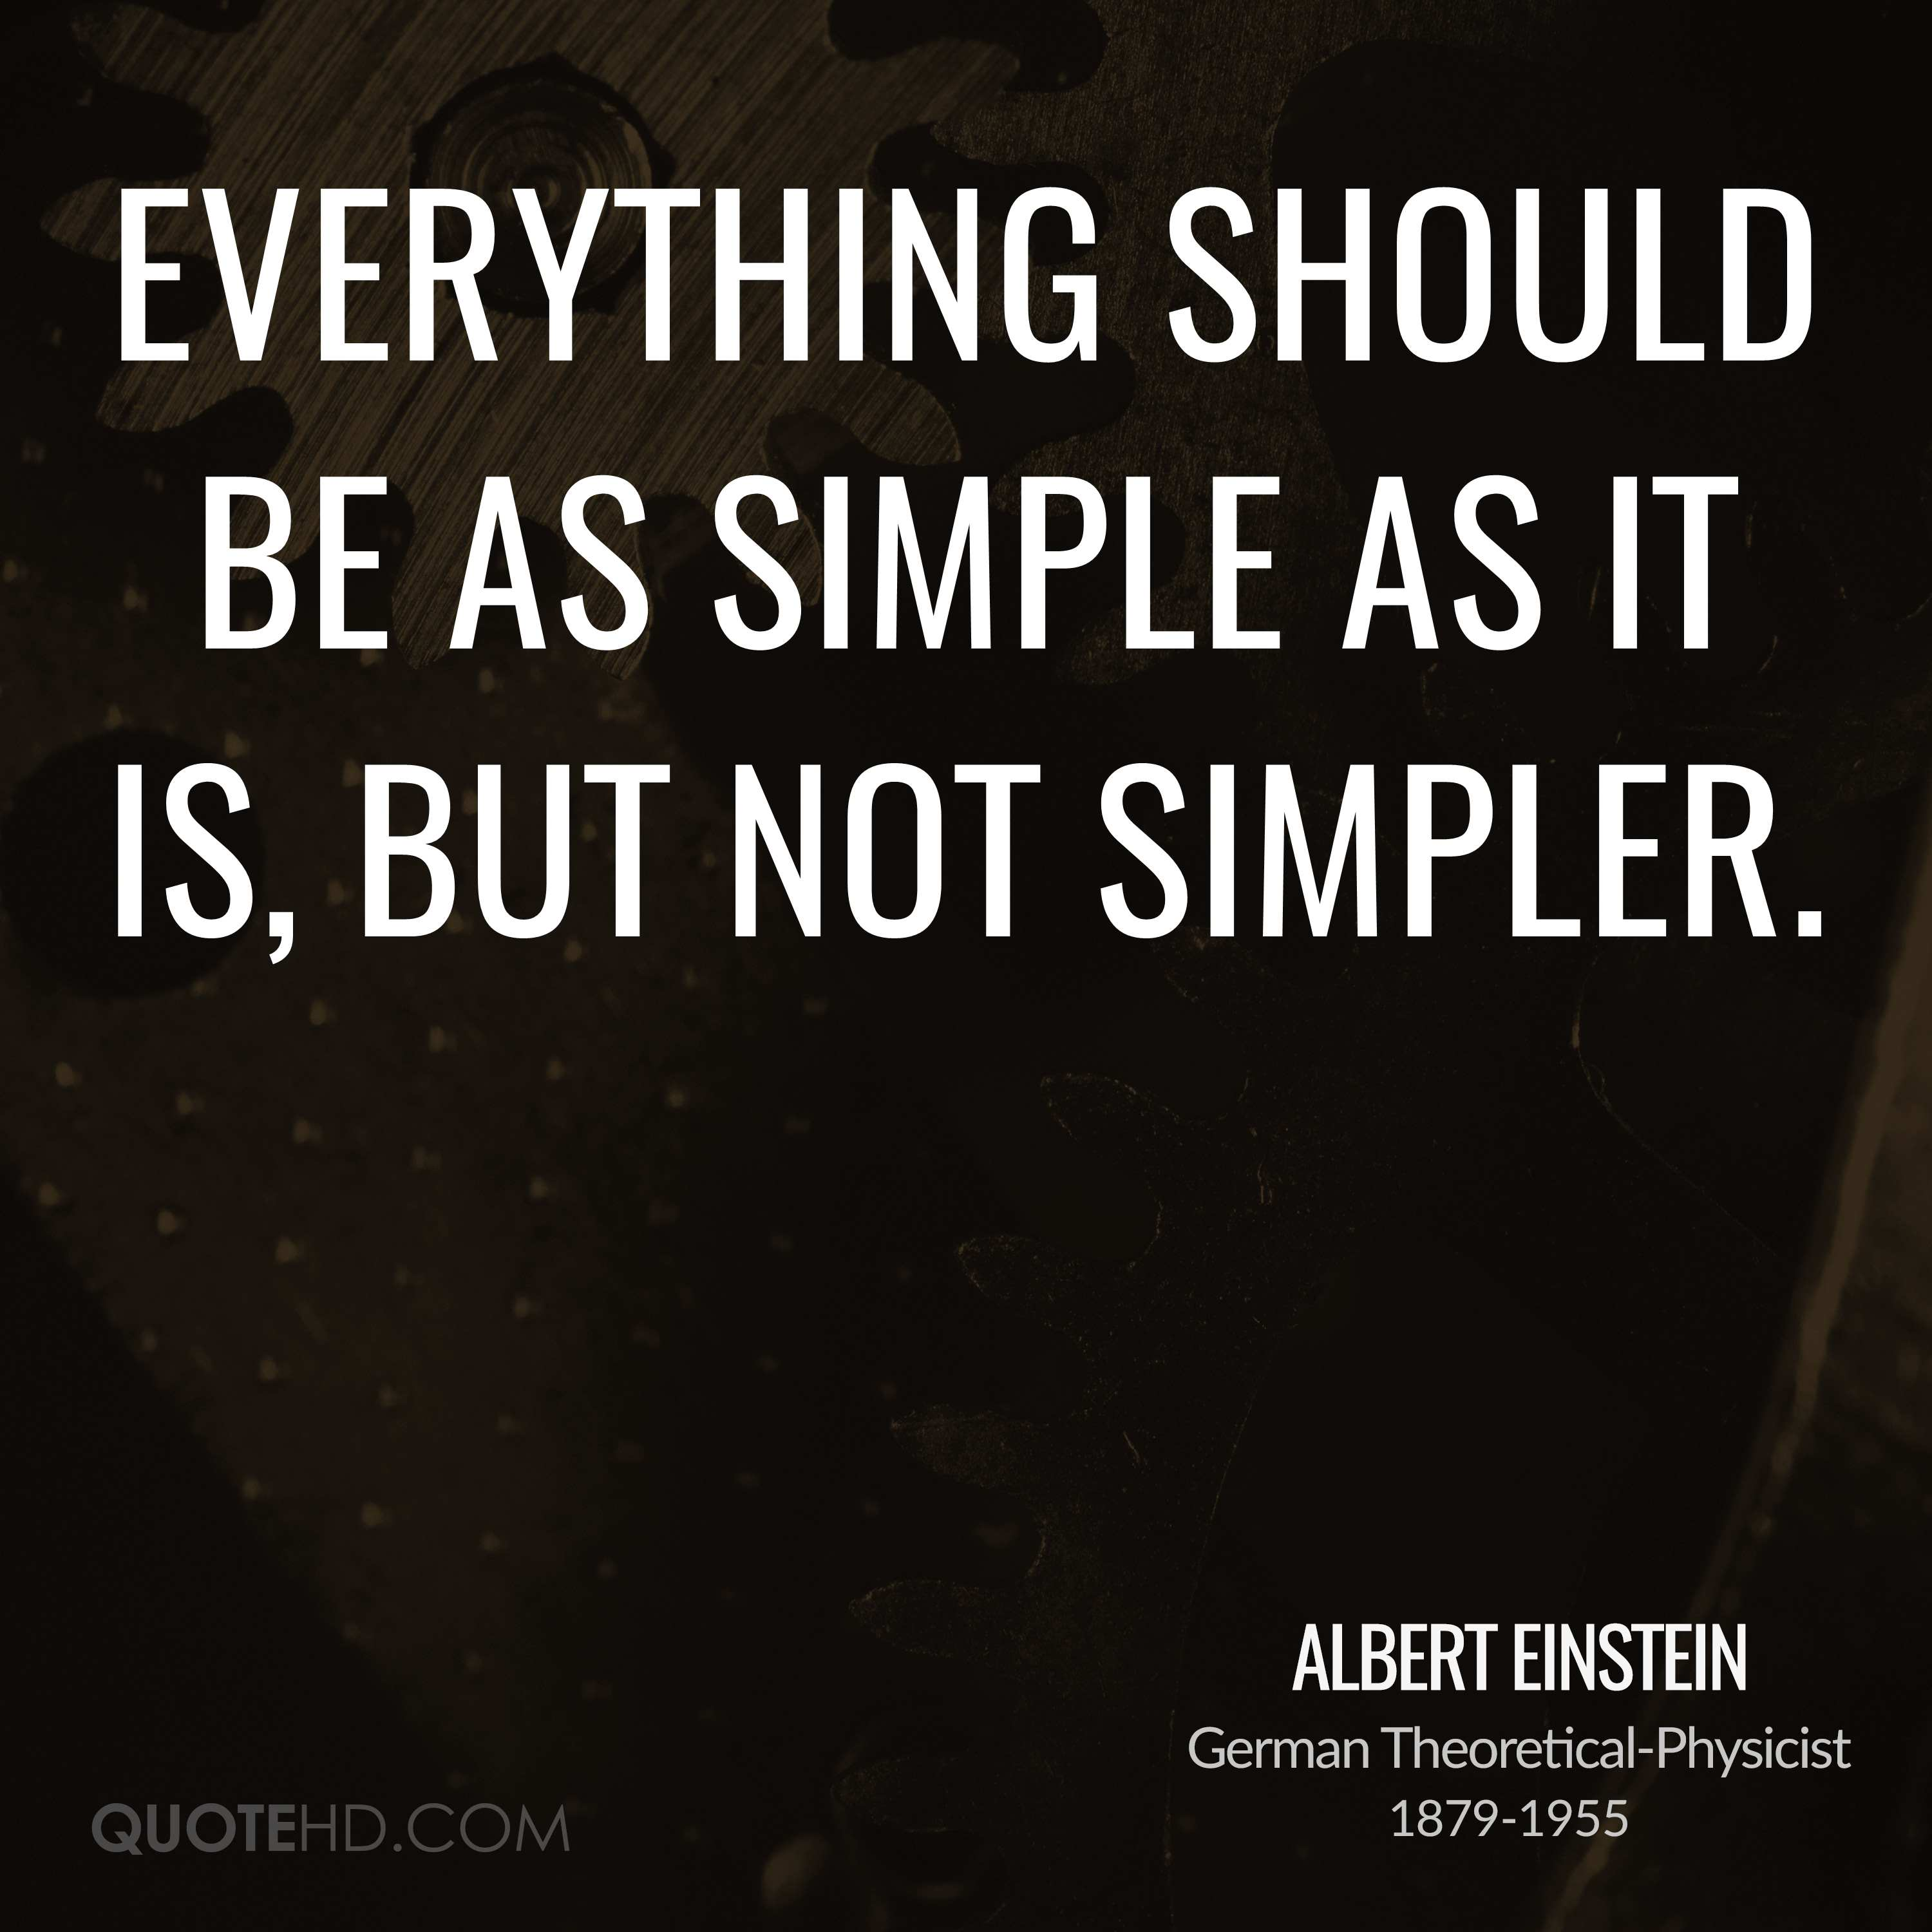 Everything should be as simple as it is, but not simpler.